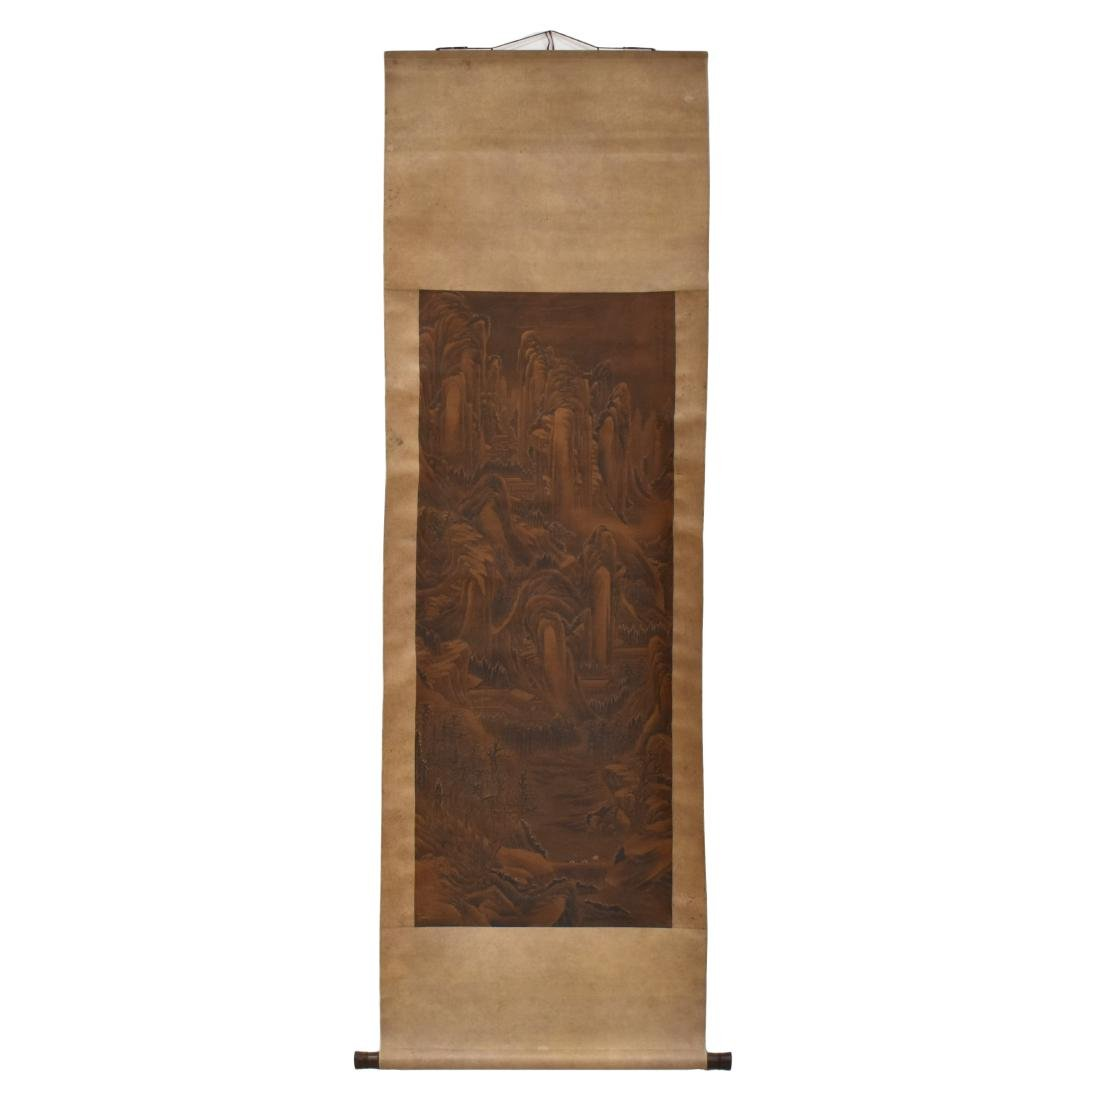 QING DYNASTY SCROLL PAINTING OF A MOUNTAIN PATH - 2